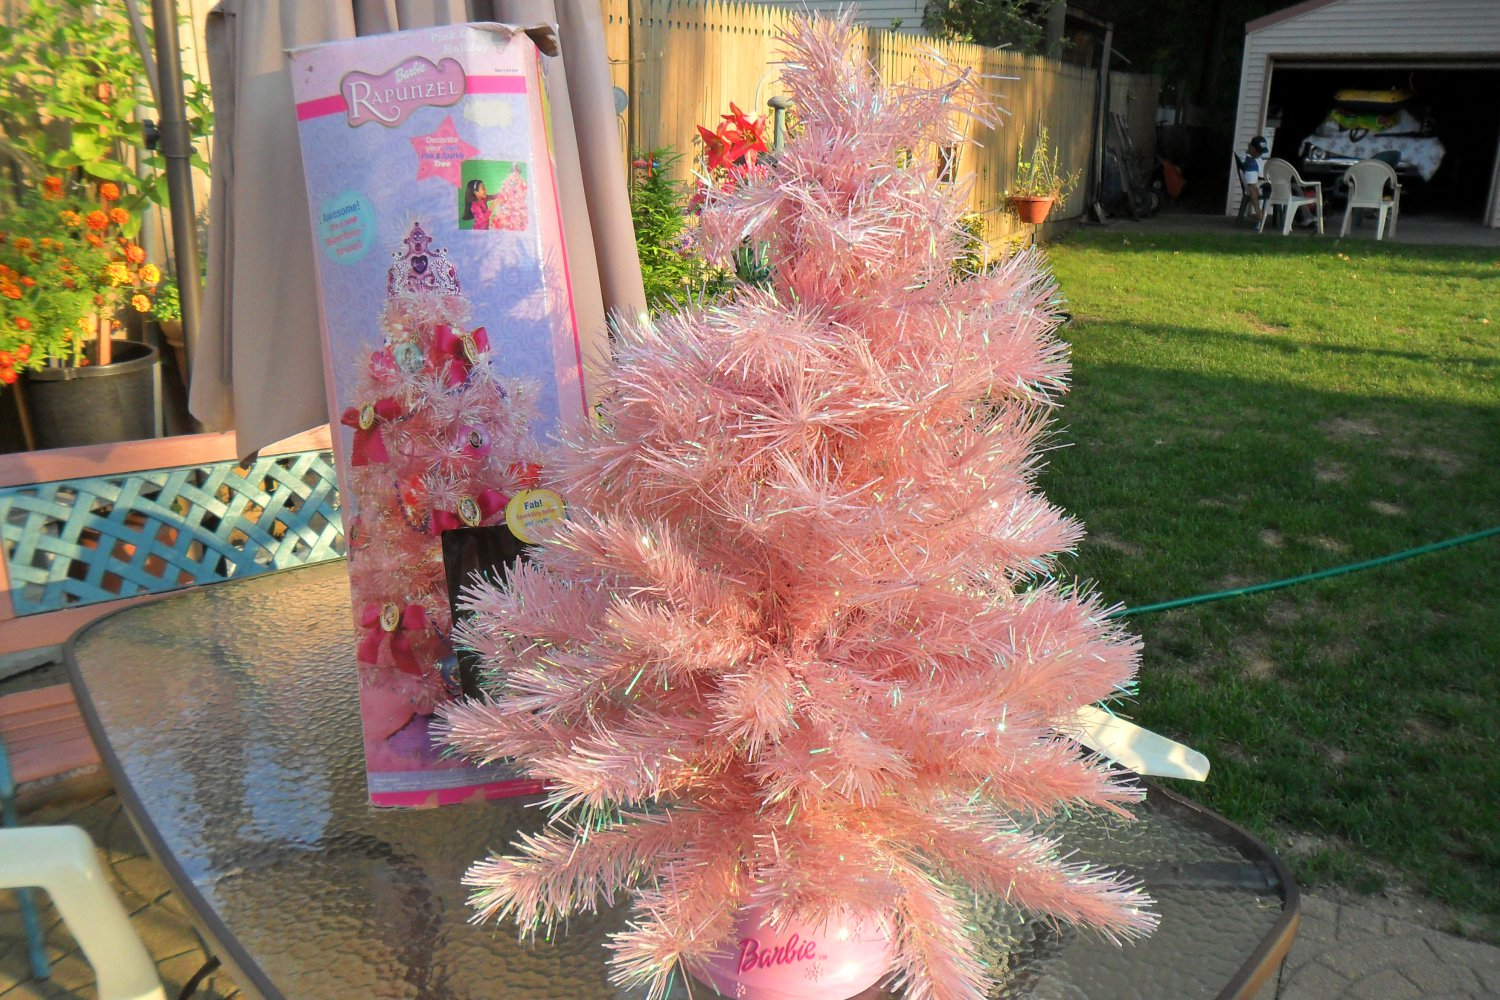 2002 Barbie Rapunzel Pink & Sparkly Holiday Tree (sold